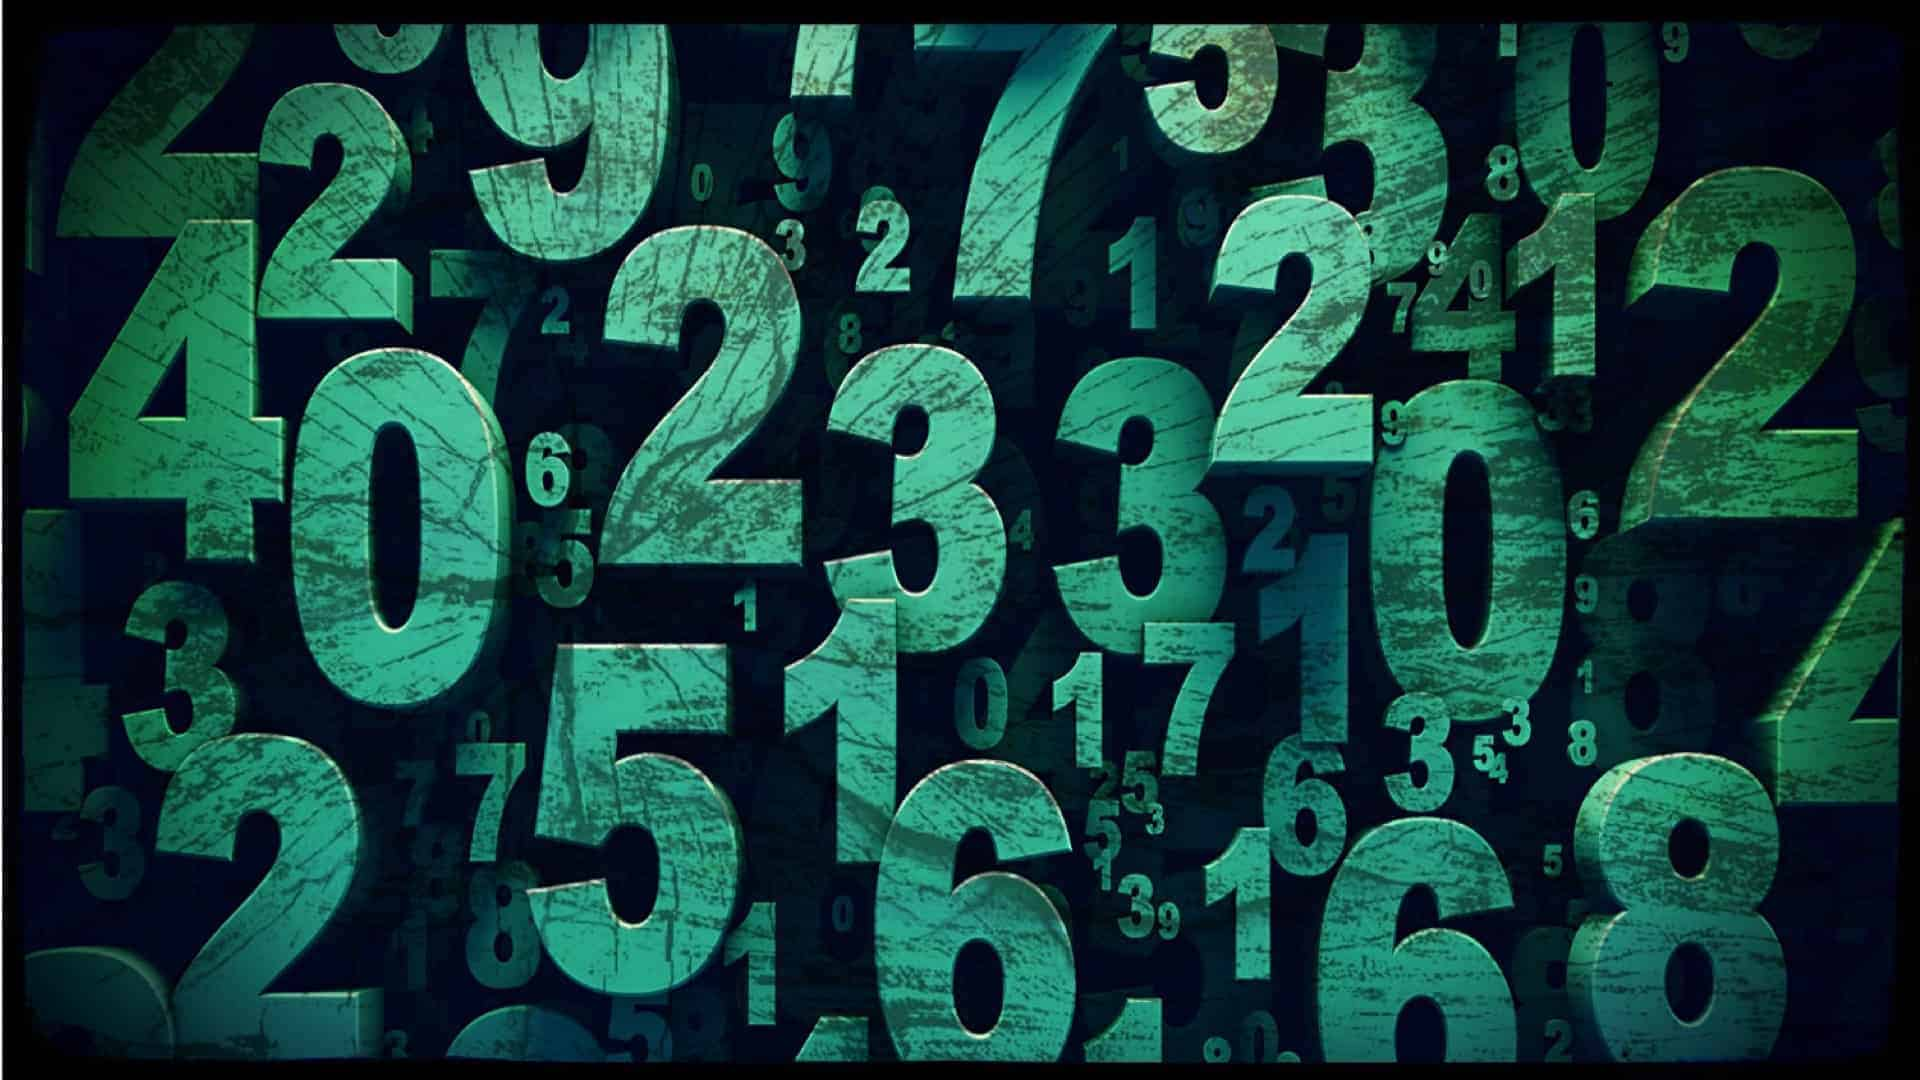 A large random in size, value and position set of green numbers are shown against a dark background.